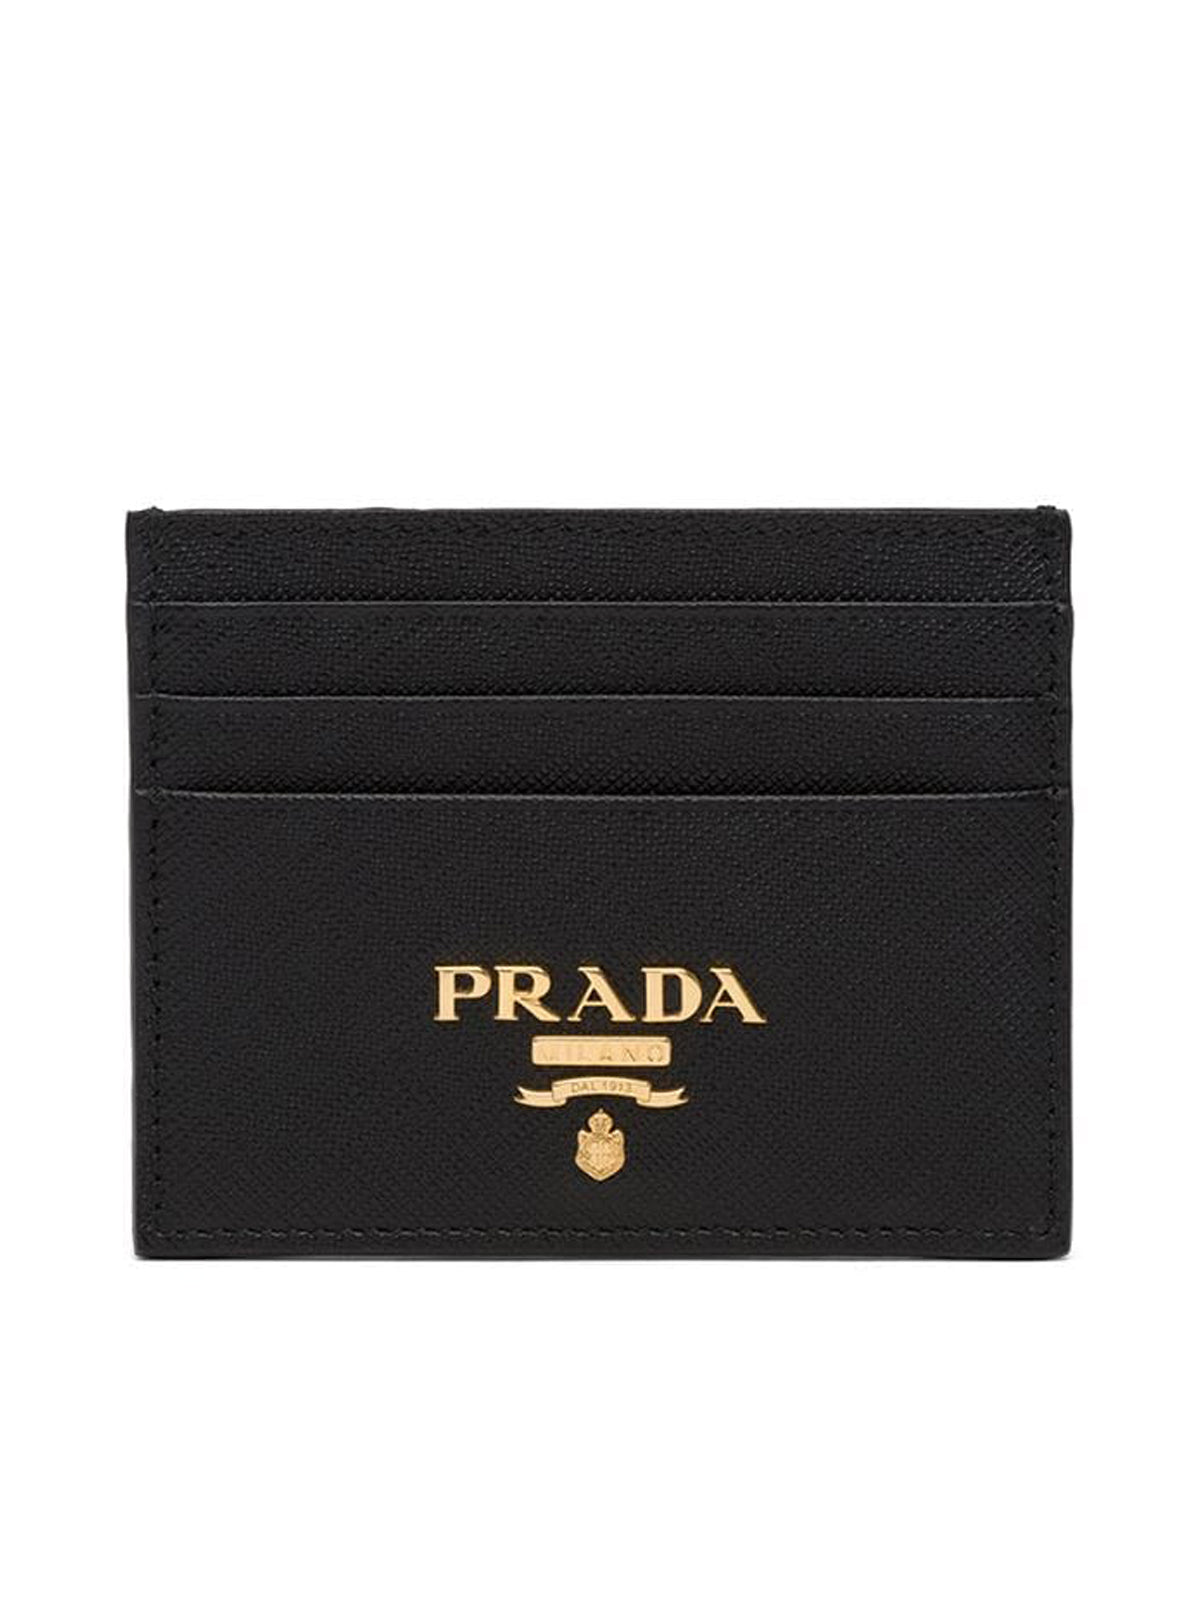 COMPACT FRONT LOGO CARDHOLDER